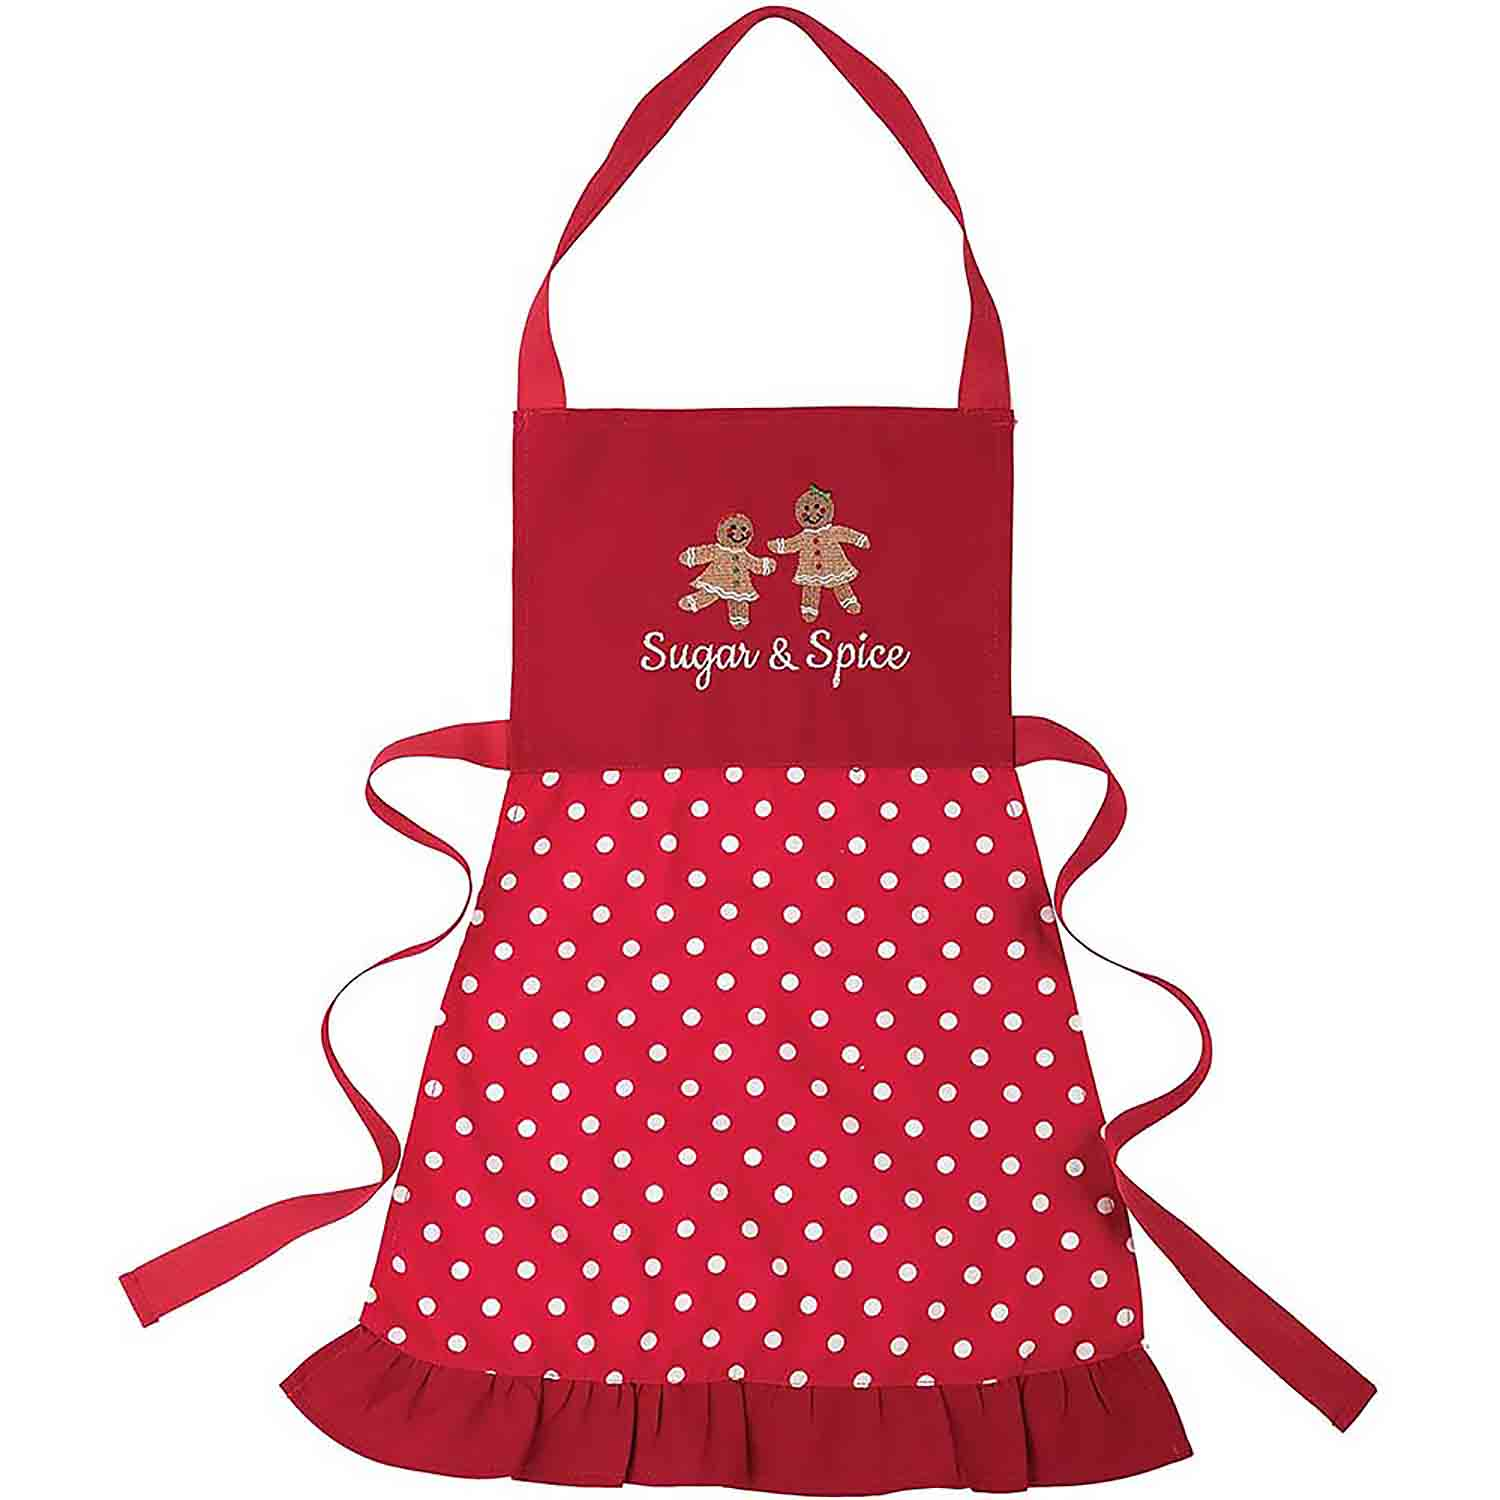 Kids' Apron - Sugar and Spice